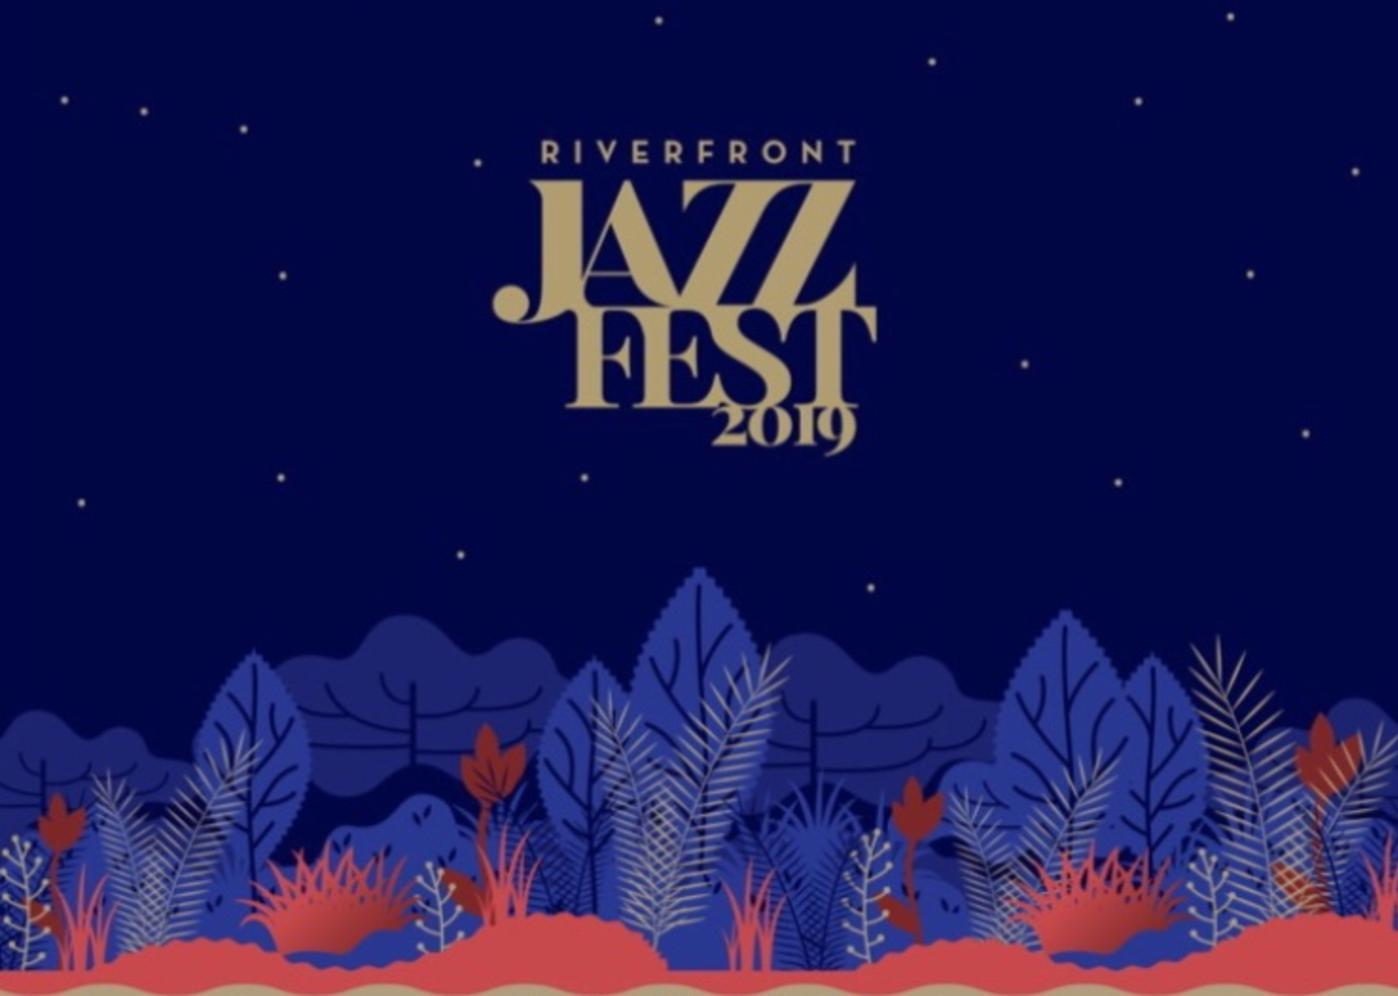 Head out to Pfiffner Pioneer Park over Labor Day Weekend for two days of jazz, local food, and fun at the Riverfront Jazz Festival!